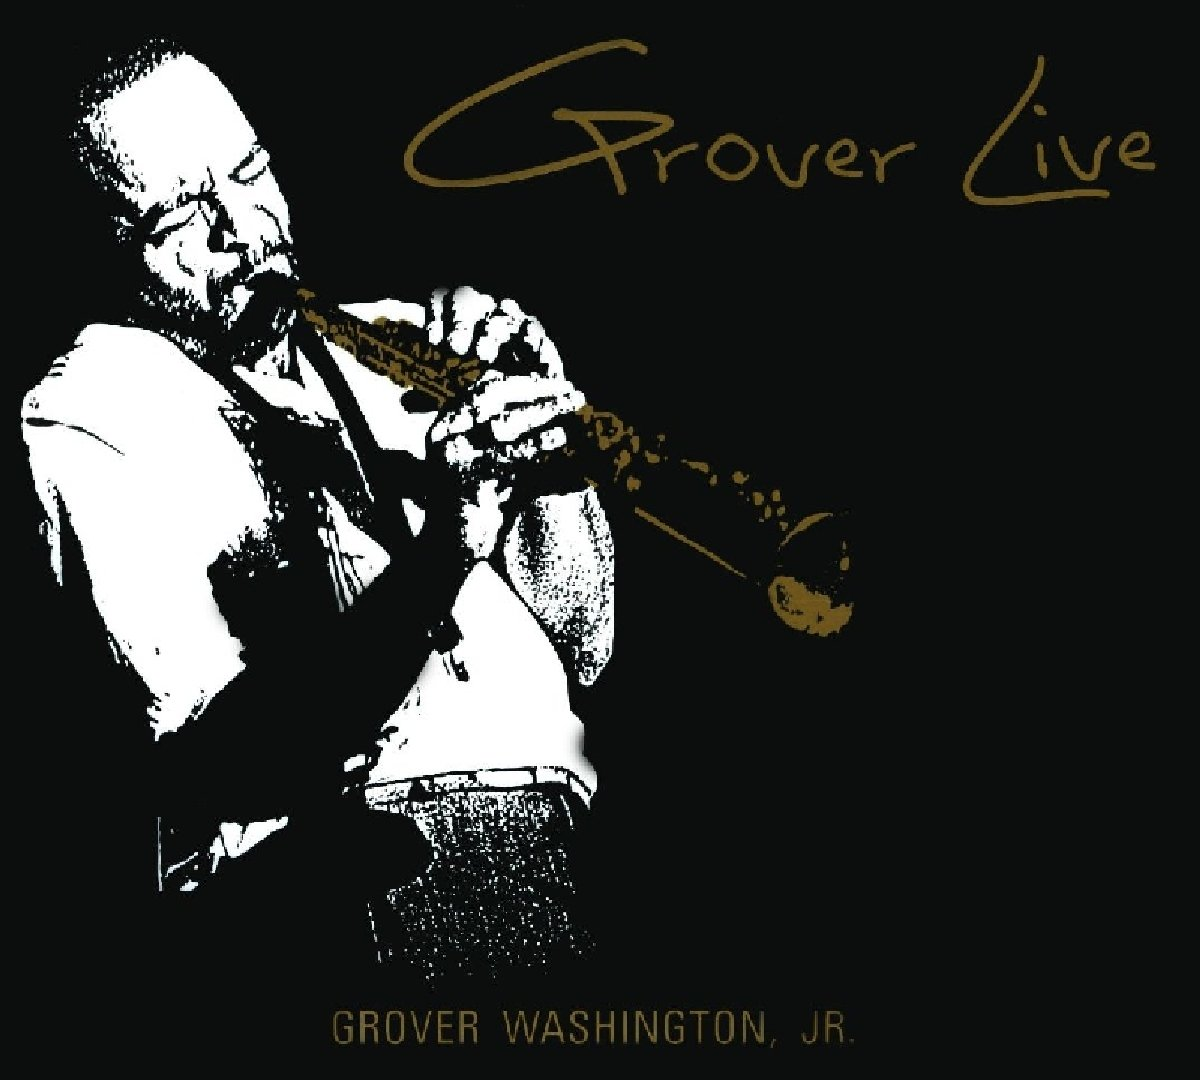 Grover Live by Lightyear